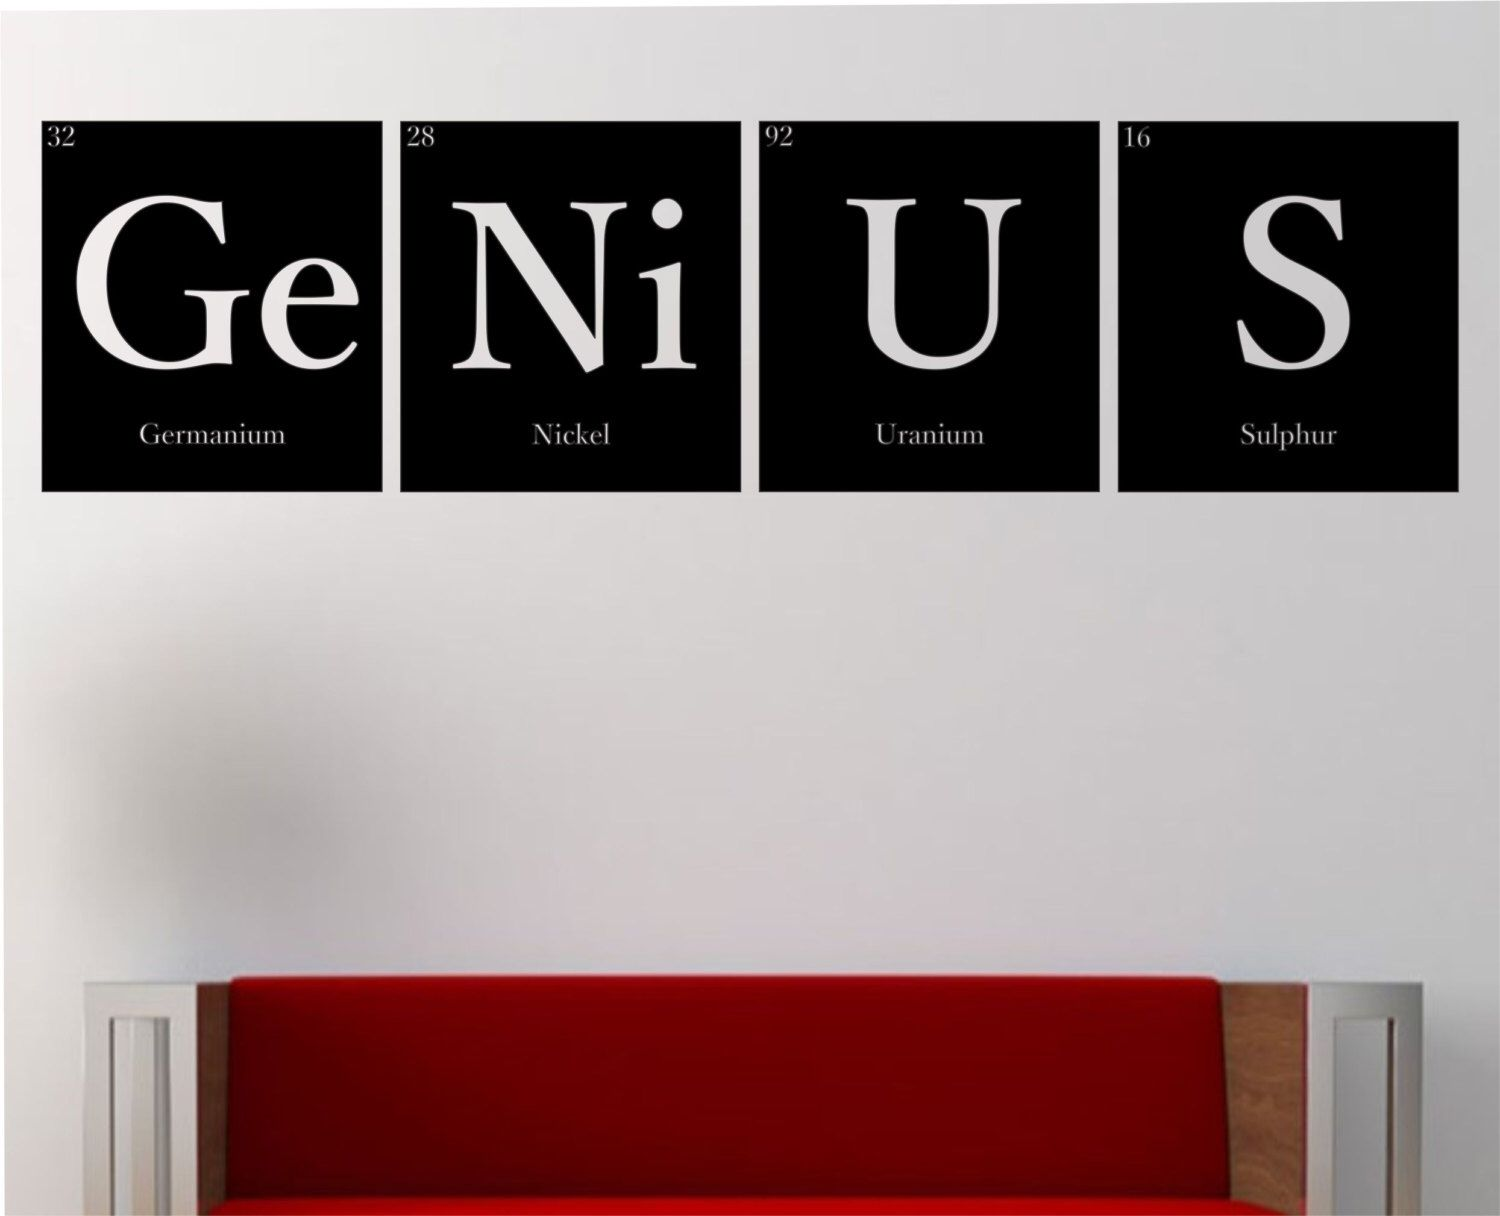 GENIUS Periodic Table Elements Vinyl Wall Decal Sticker Art Decor Bedroom Design Mural Science Geek nerd educational education smart home is part of bedroom Decoration Geek - Default Color is Black  (You do have the option of choosing another color listed in the second picture that's provided) Size 11 inches x 42 inches Decal will come in two pieces GE, NI in one piece and U,S in another piece  The picture shown is for display purposes only and is not the actual size of the Decal  Please view the Size listed above for the correct measurements  Thank you                                                                              Our Innovative inexpensive Wall Vinyl Decals are the new trend in interior and exterior designs to reinvent your space!   This decal would be perfect on any wall of your home or anywhere you would love to place it!  The Vinyl is very easy to apply while keeping it mess and damage free  Simple Peel & stick process  Removes in seconds without damaging your paint  Included in each order will be Easy to follow instructions  Instantly brightens up your space  Please note! We do Custom Work per request! Securely package in a thick mailing tube! Made to arrive safe and undamaged! Upgrade your space with this amazing design!